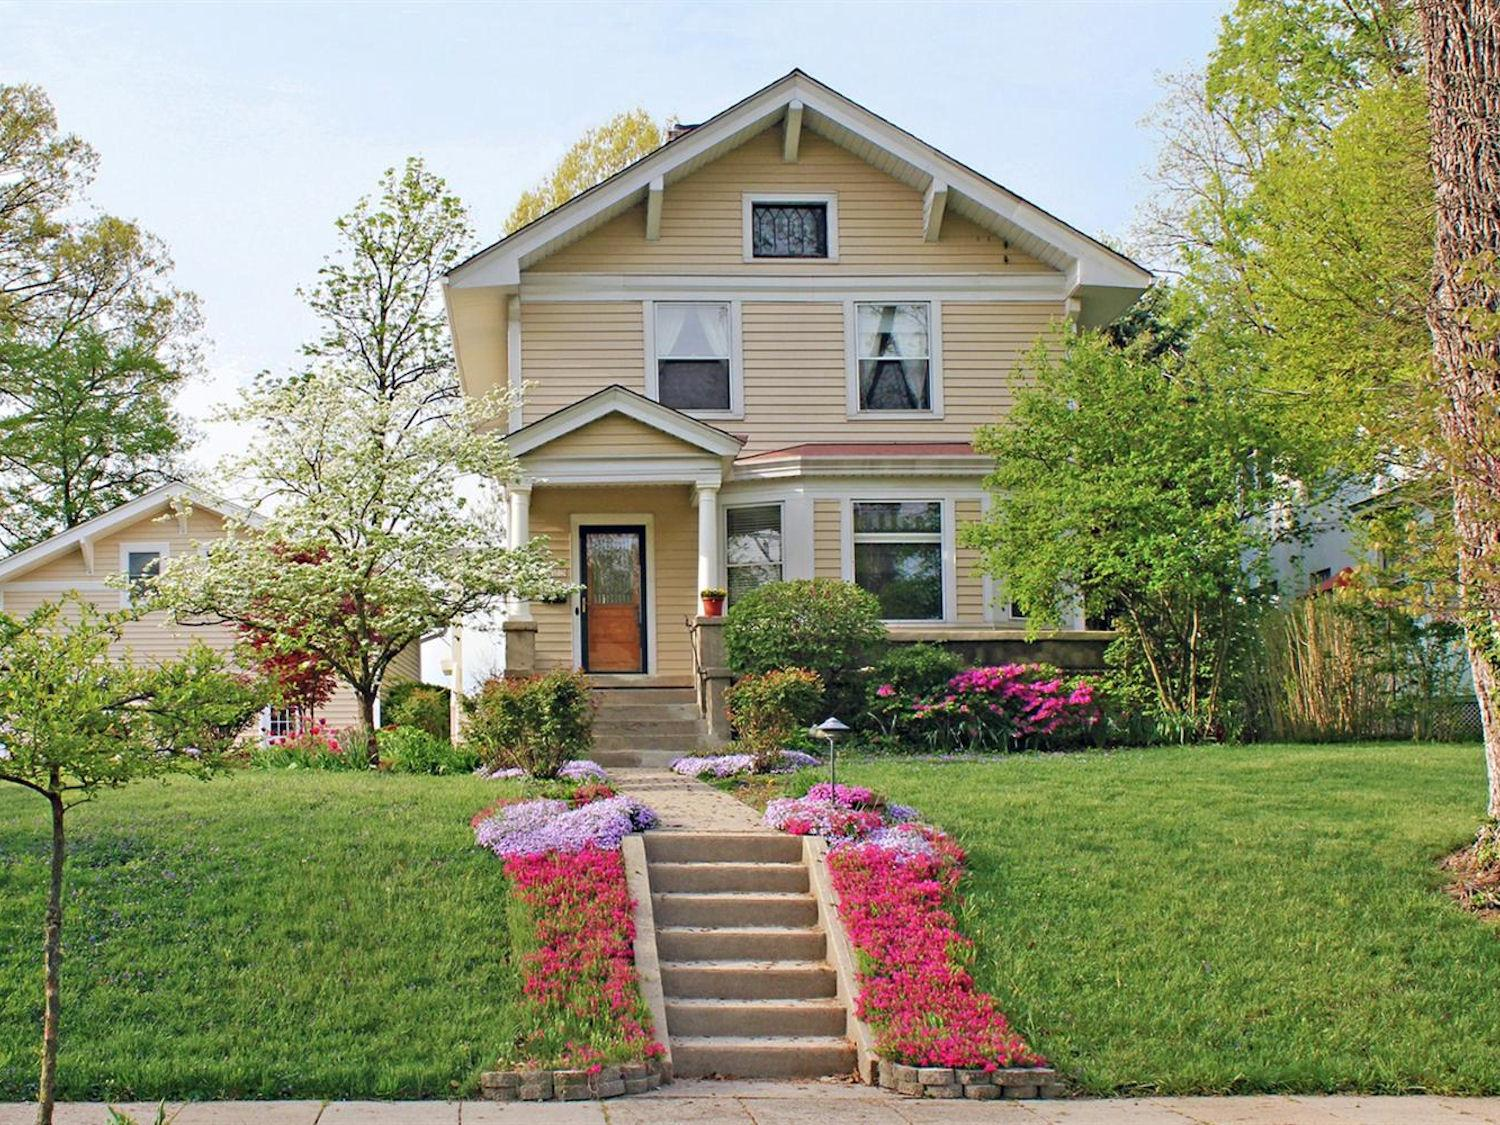 123 e mills ave wyoming oh 45215 listing details mls for Wyoming home insurance